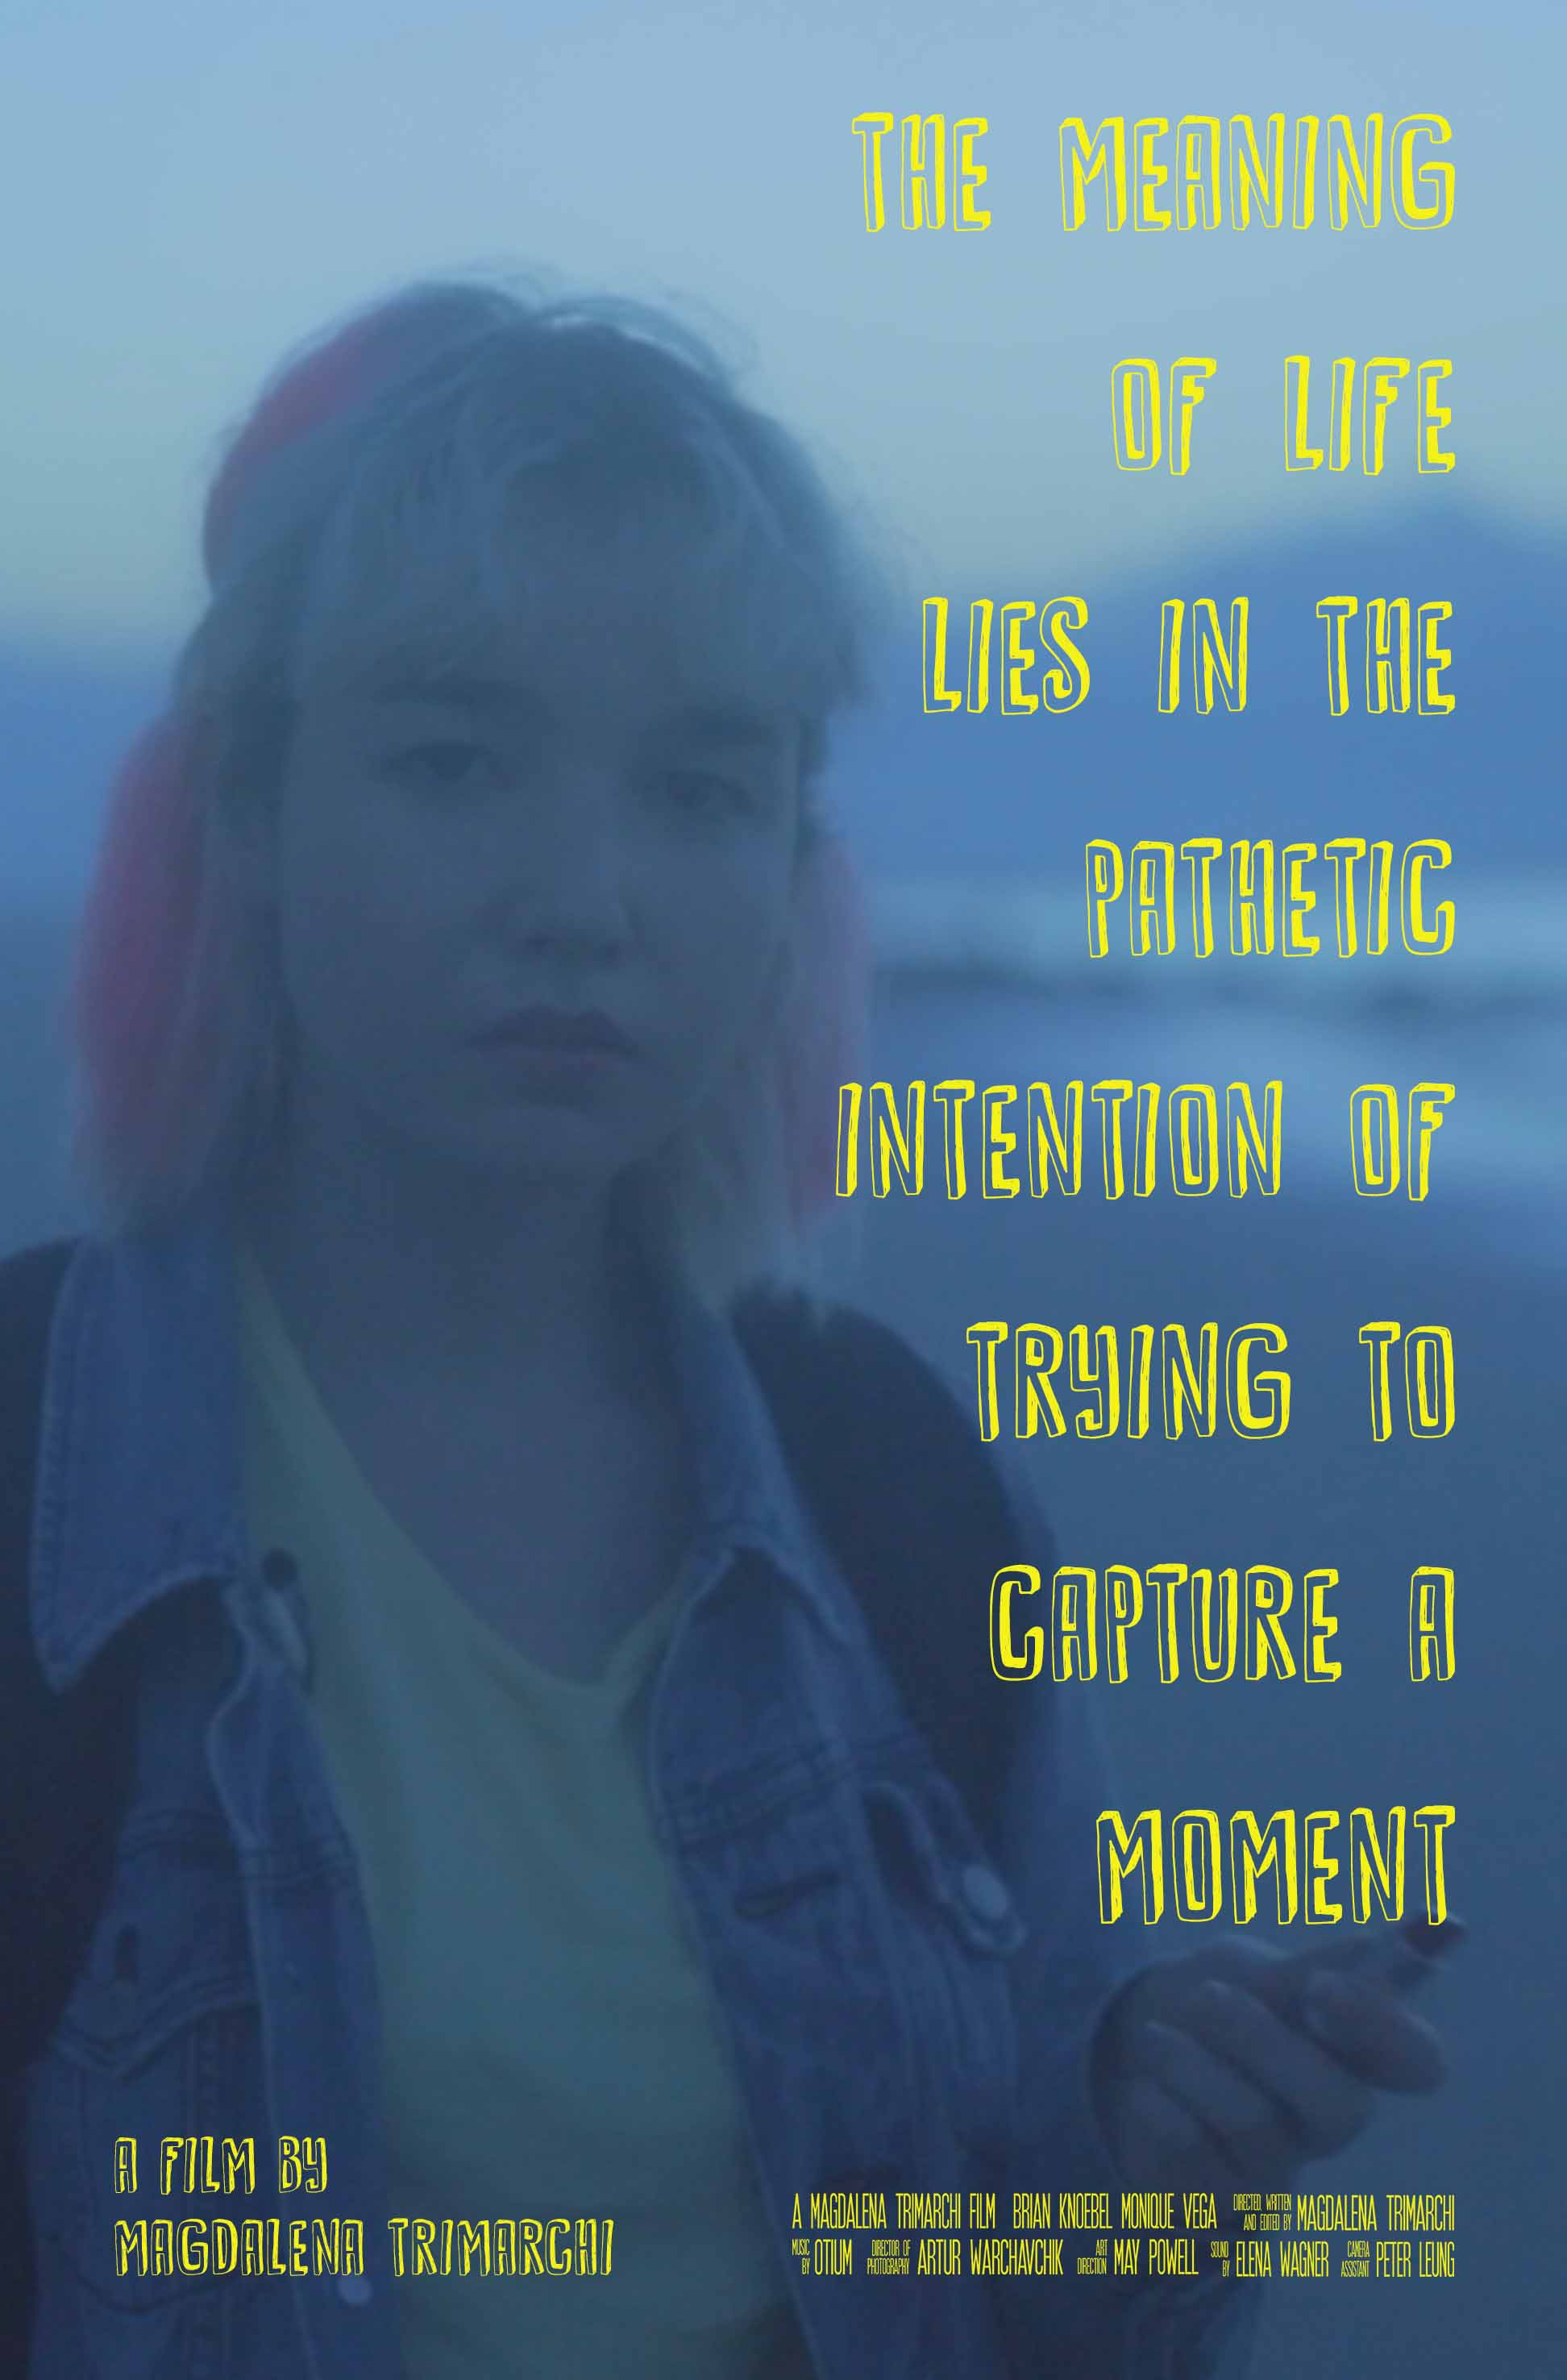 The Meaning of Life Lies in the Pathetic Intention of Trying